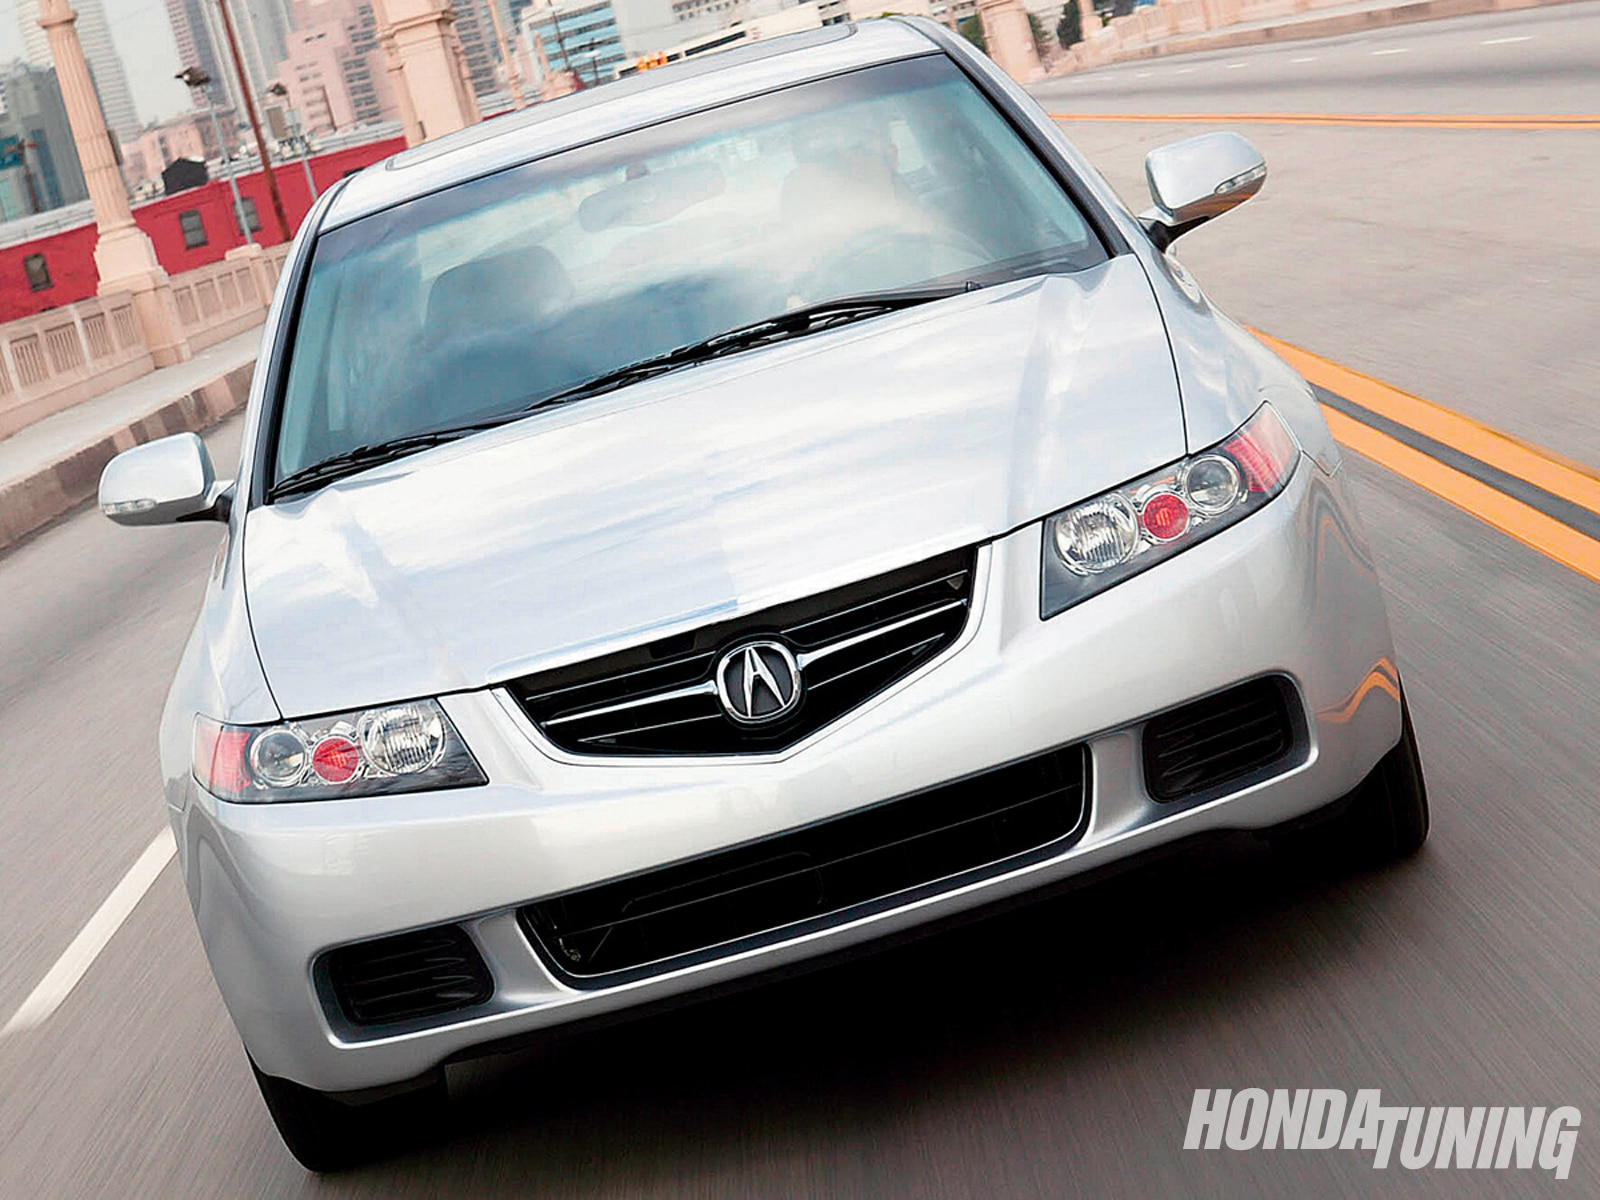 acura tsx k24a2 engine performance parts and tuning 2005 Honda CR-V Engine Diagram